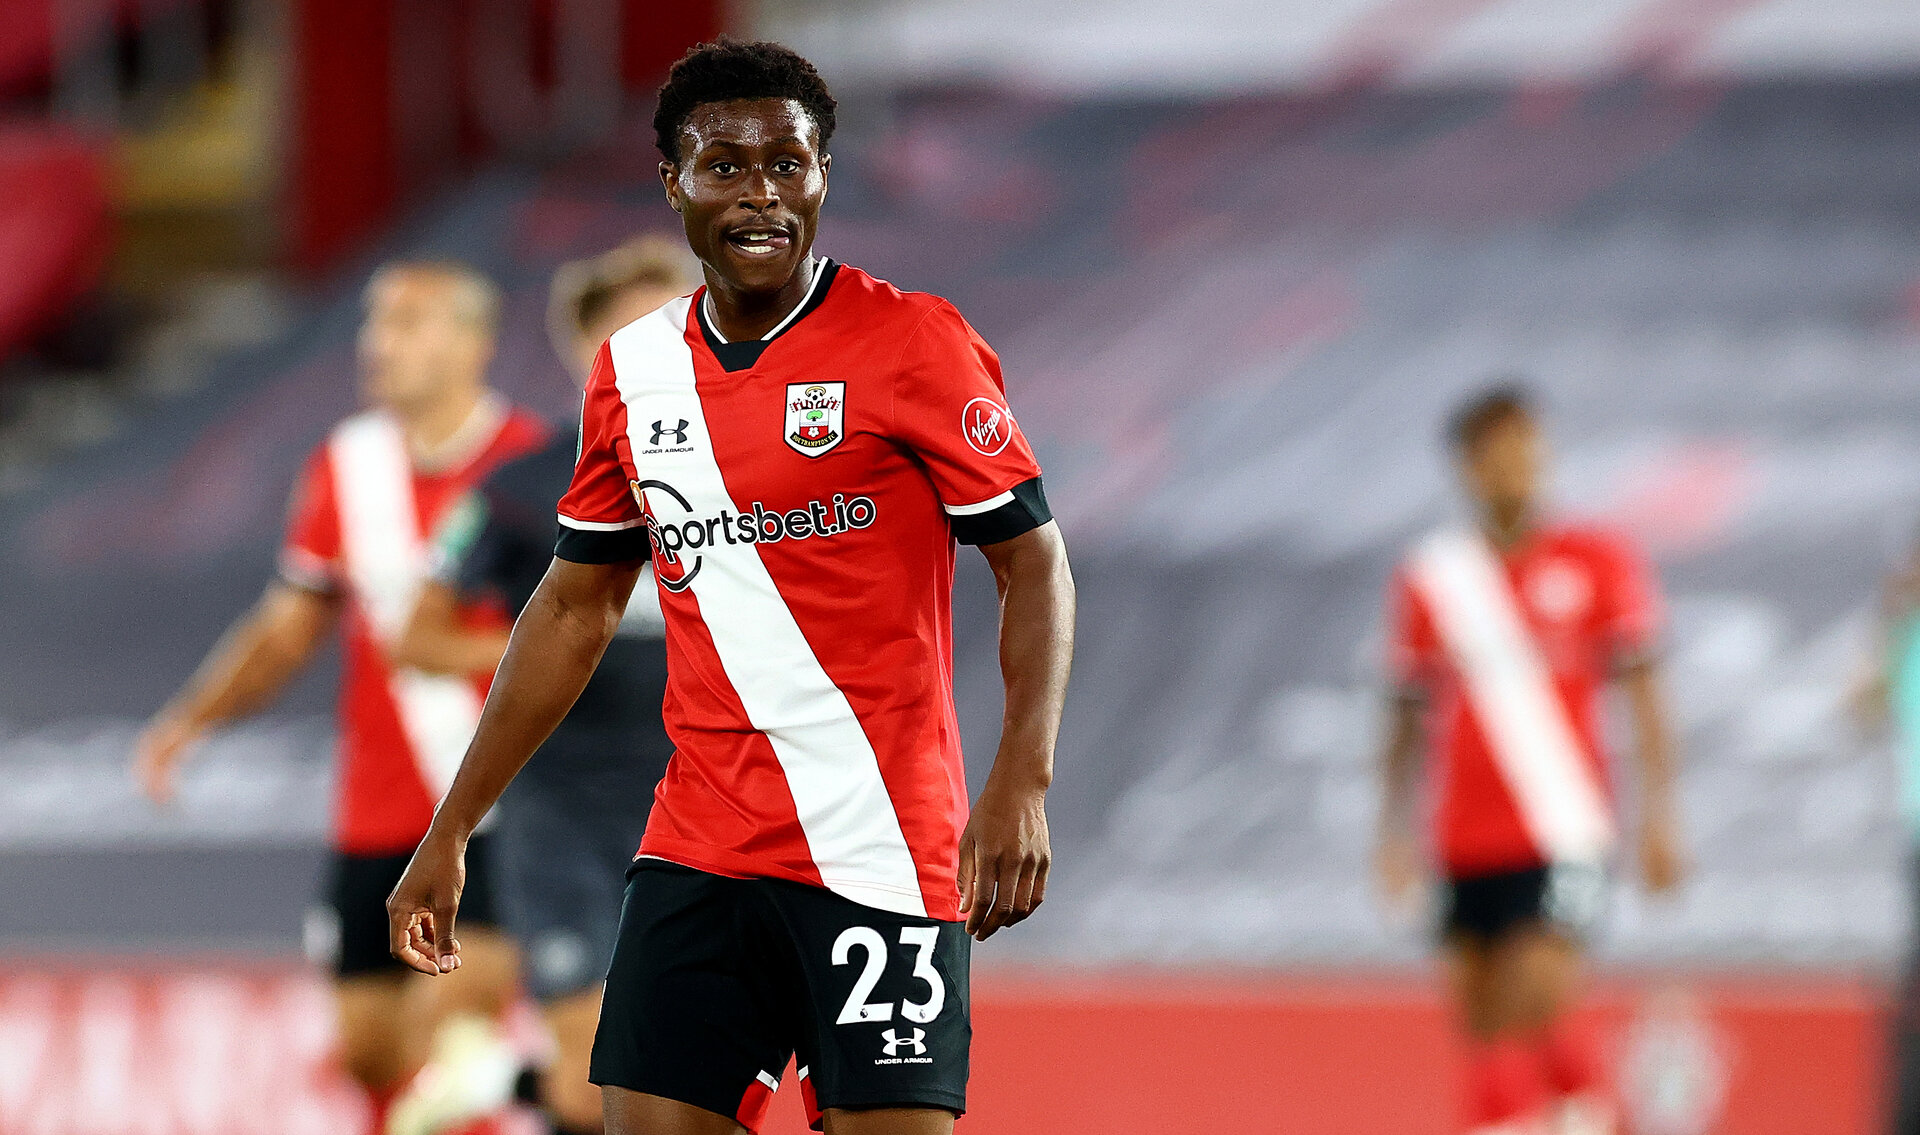 SOUTHAMPTON, ENGLAND - SEPTEMBER 16: Nathan Tella of Southampton during the Carabao Cup 2nd round match between Southampton FC and Brentford FC, at St. Mary's Stadium on September 16, 2020 in Southampton, England. (Photo by Matt Watson/Southampton FC via Getty Images)